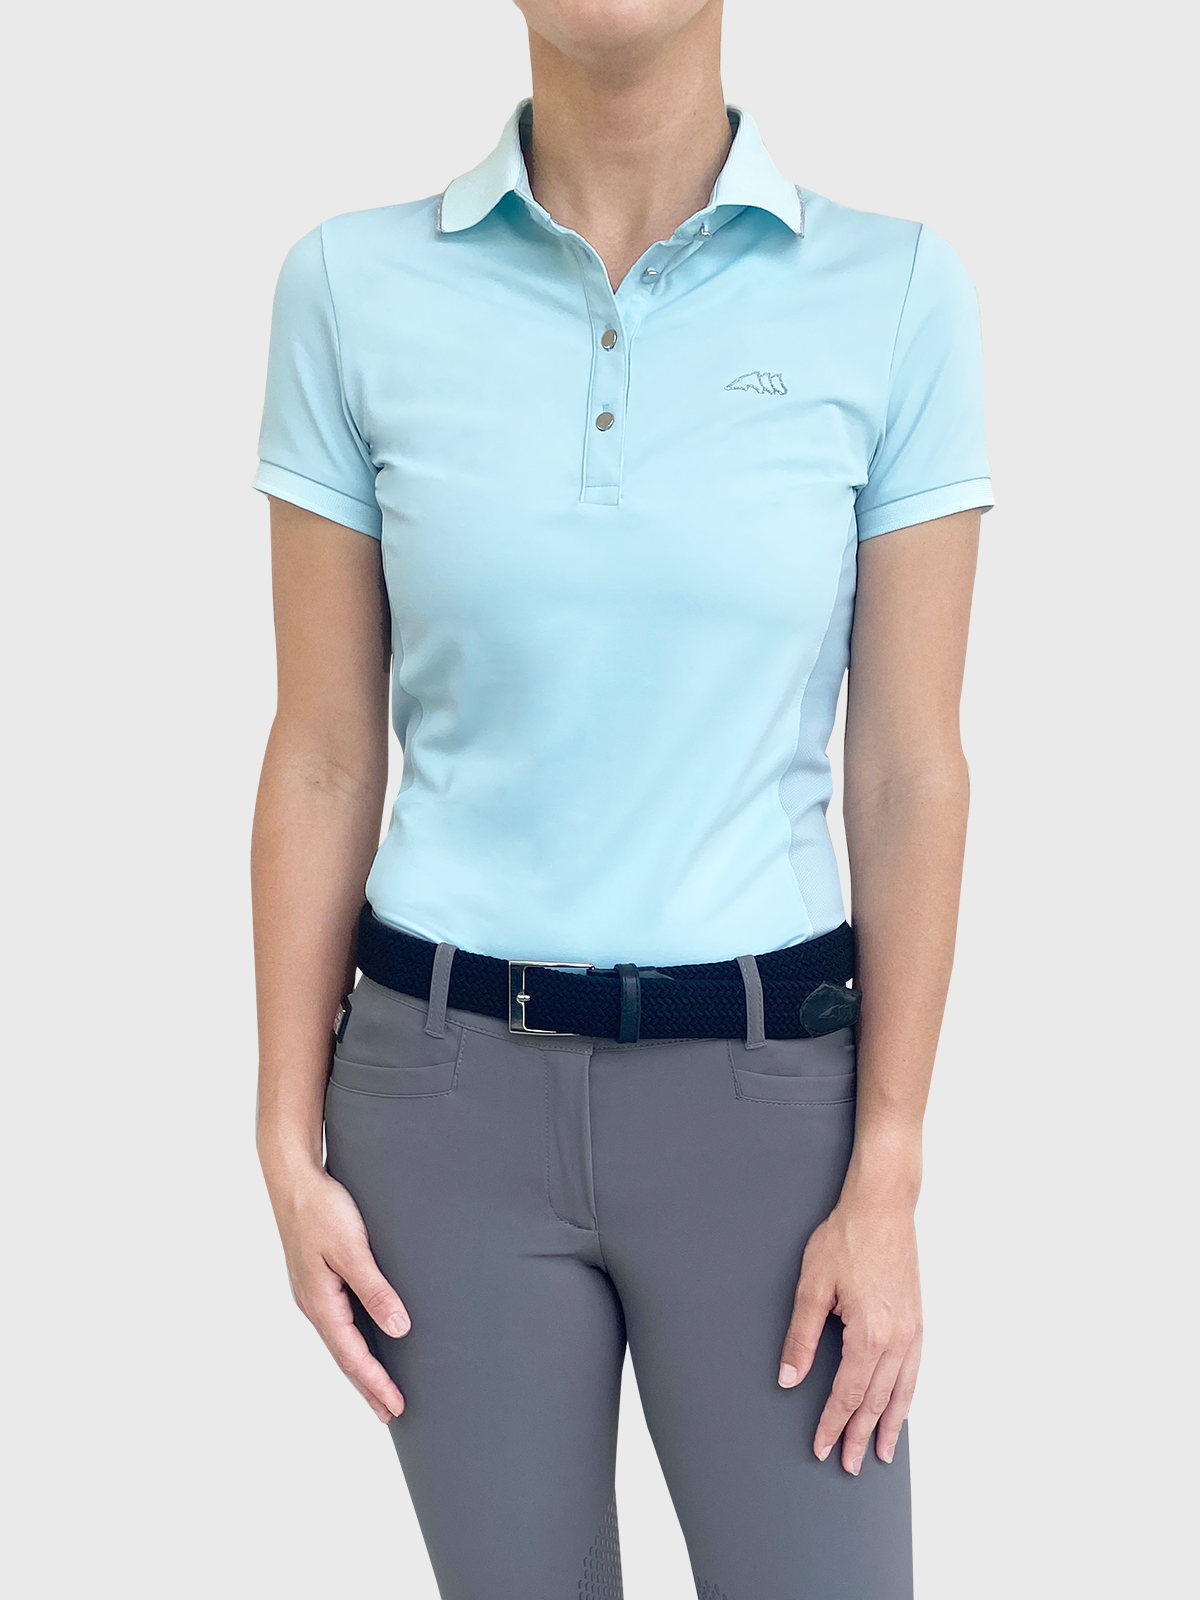 ELLAE WOMEN'S POLO SHIRT 2